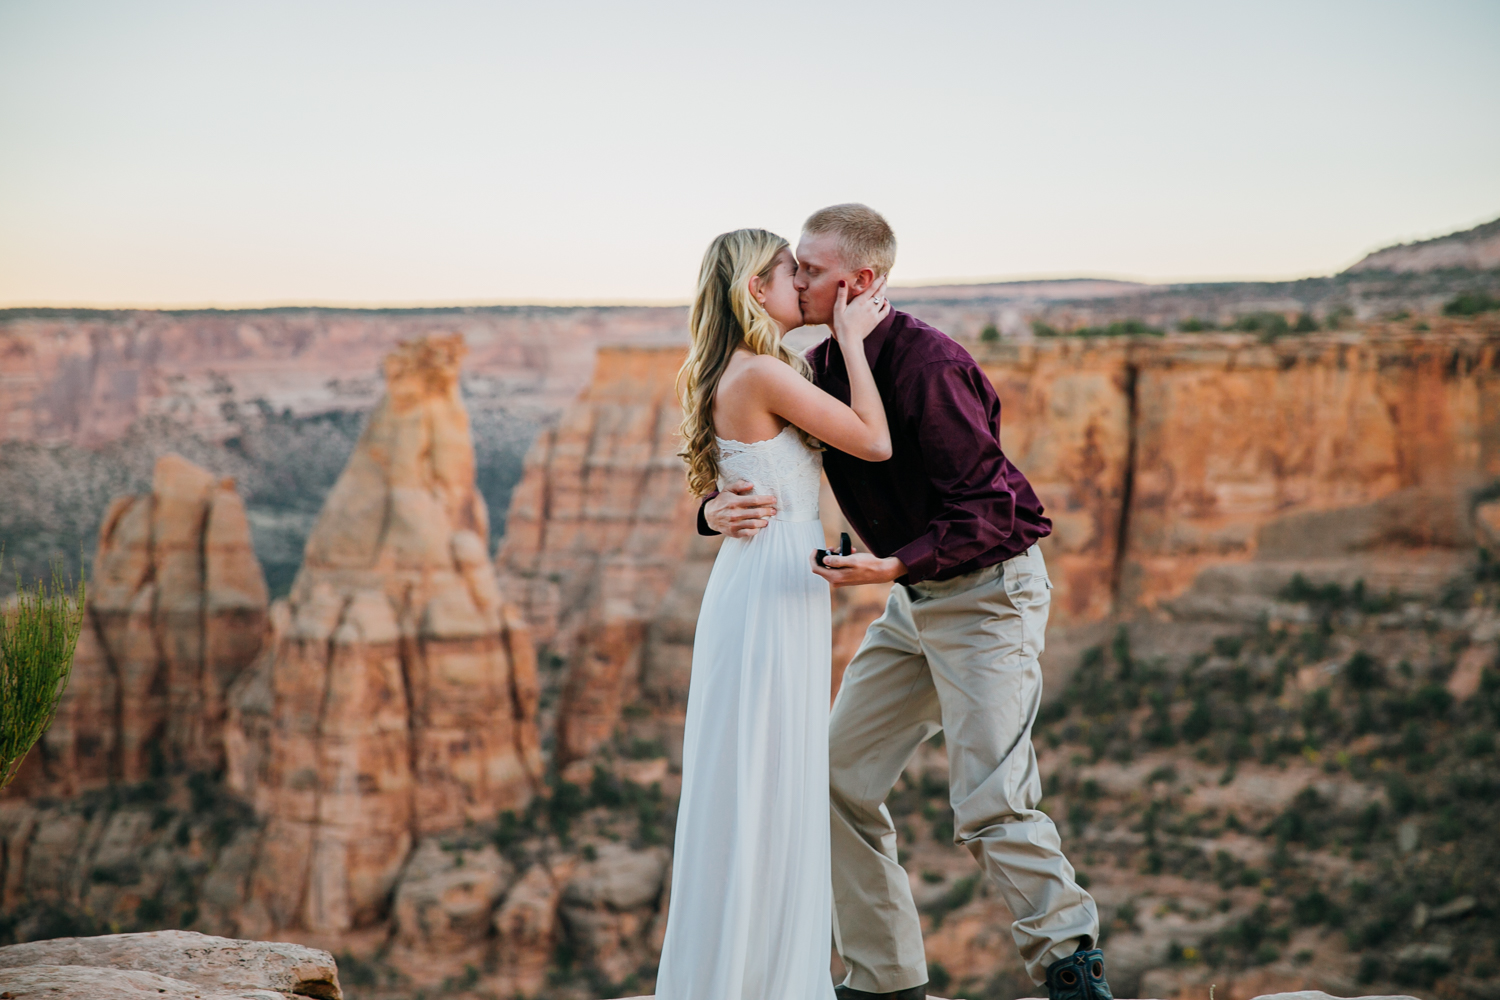 grand-junction-colorado-monument-wedding-photographer-engagements-32.jpg